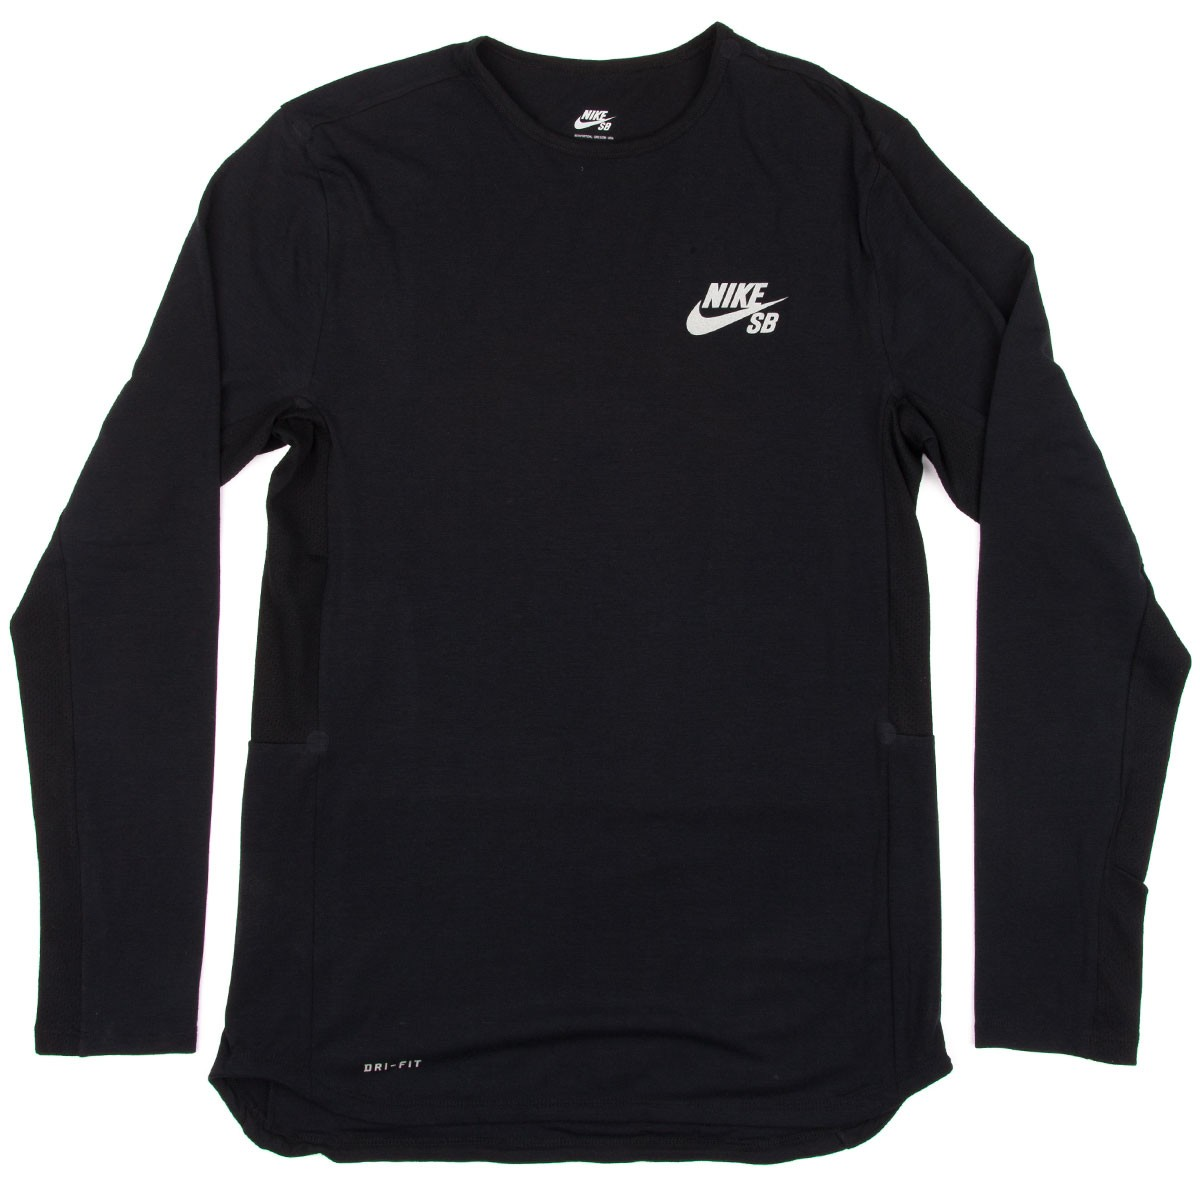 392ec4a160cd nike-sb-skyline-dri-fit-cool-long-sleeve-crew-t-shirt -black-reflective-silver-1.1506662885.jpg